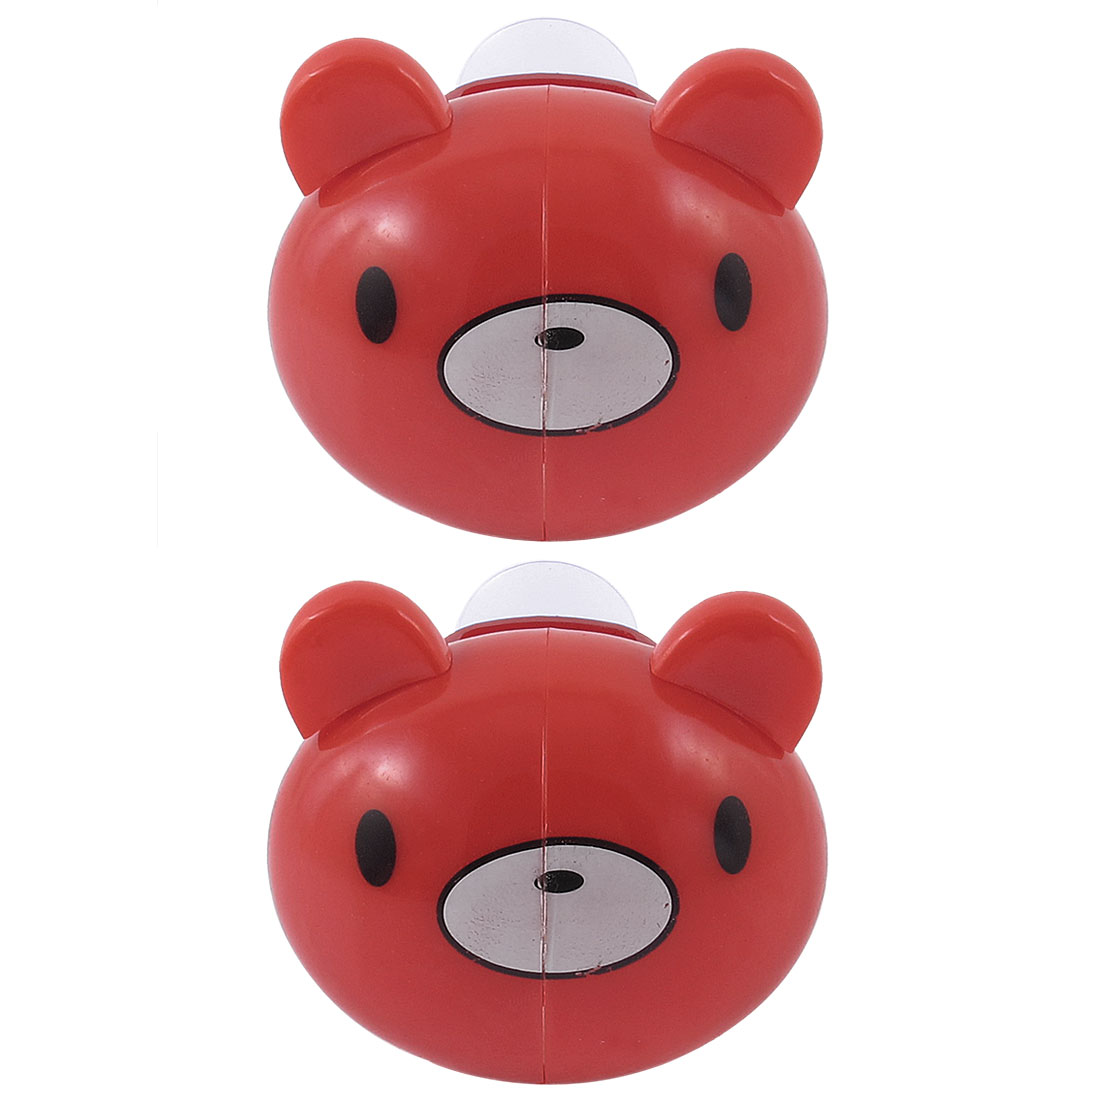 2 Pcs Bathroom Wall Rack Red Cartoon Bear Toothbrush Holder with Suction Grip